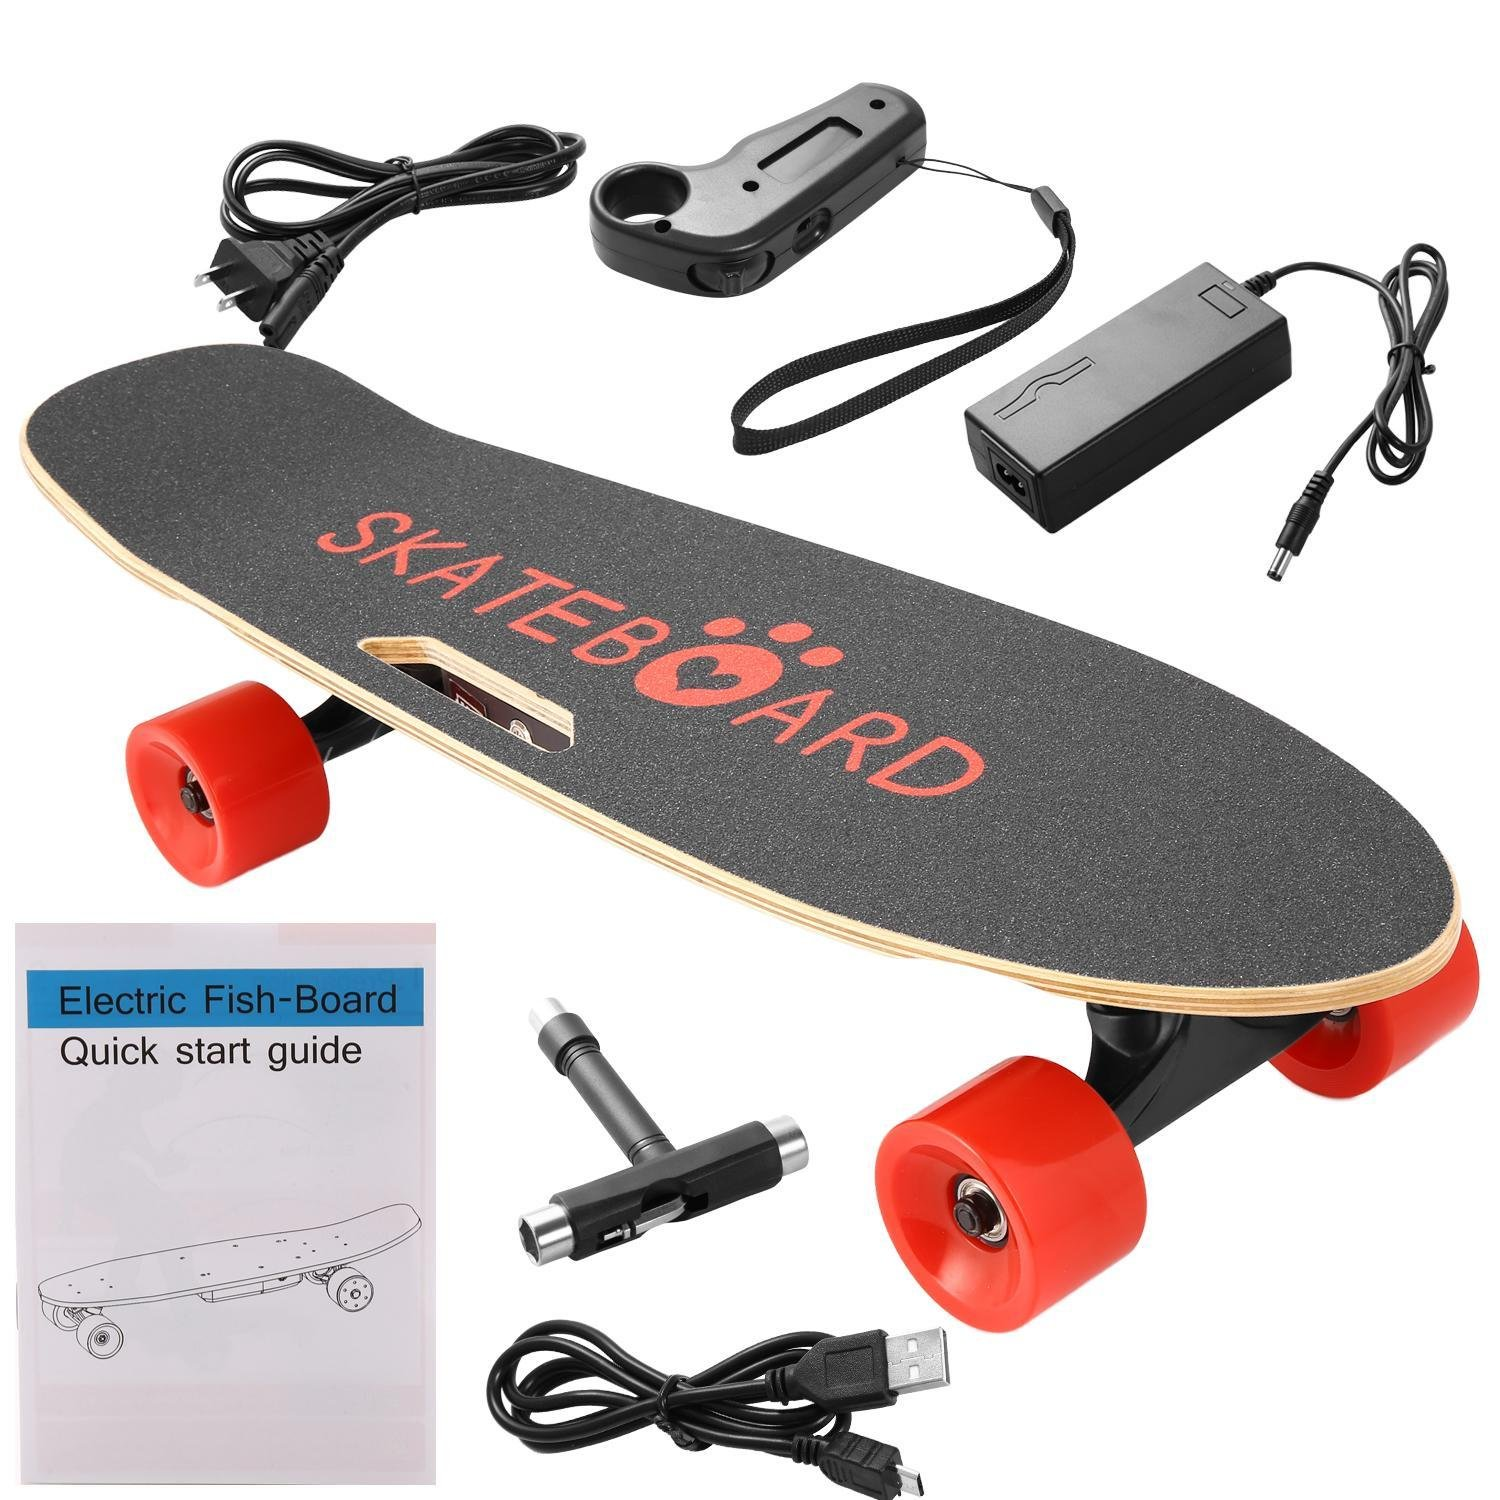 Kaluo Electric Cruiser Skateboard with with Handheld Remote Controller, 350W Motorized Skateboard Longboard, Red PU Wheels (US STOCK) (Red Wheel) by Kaluo